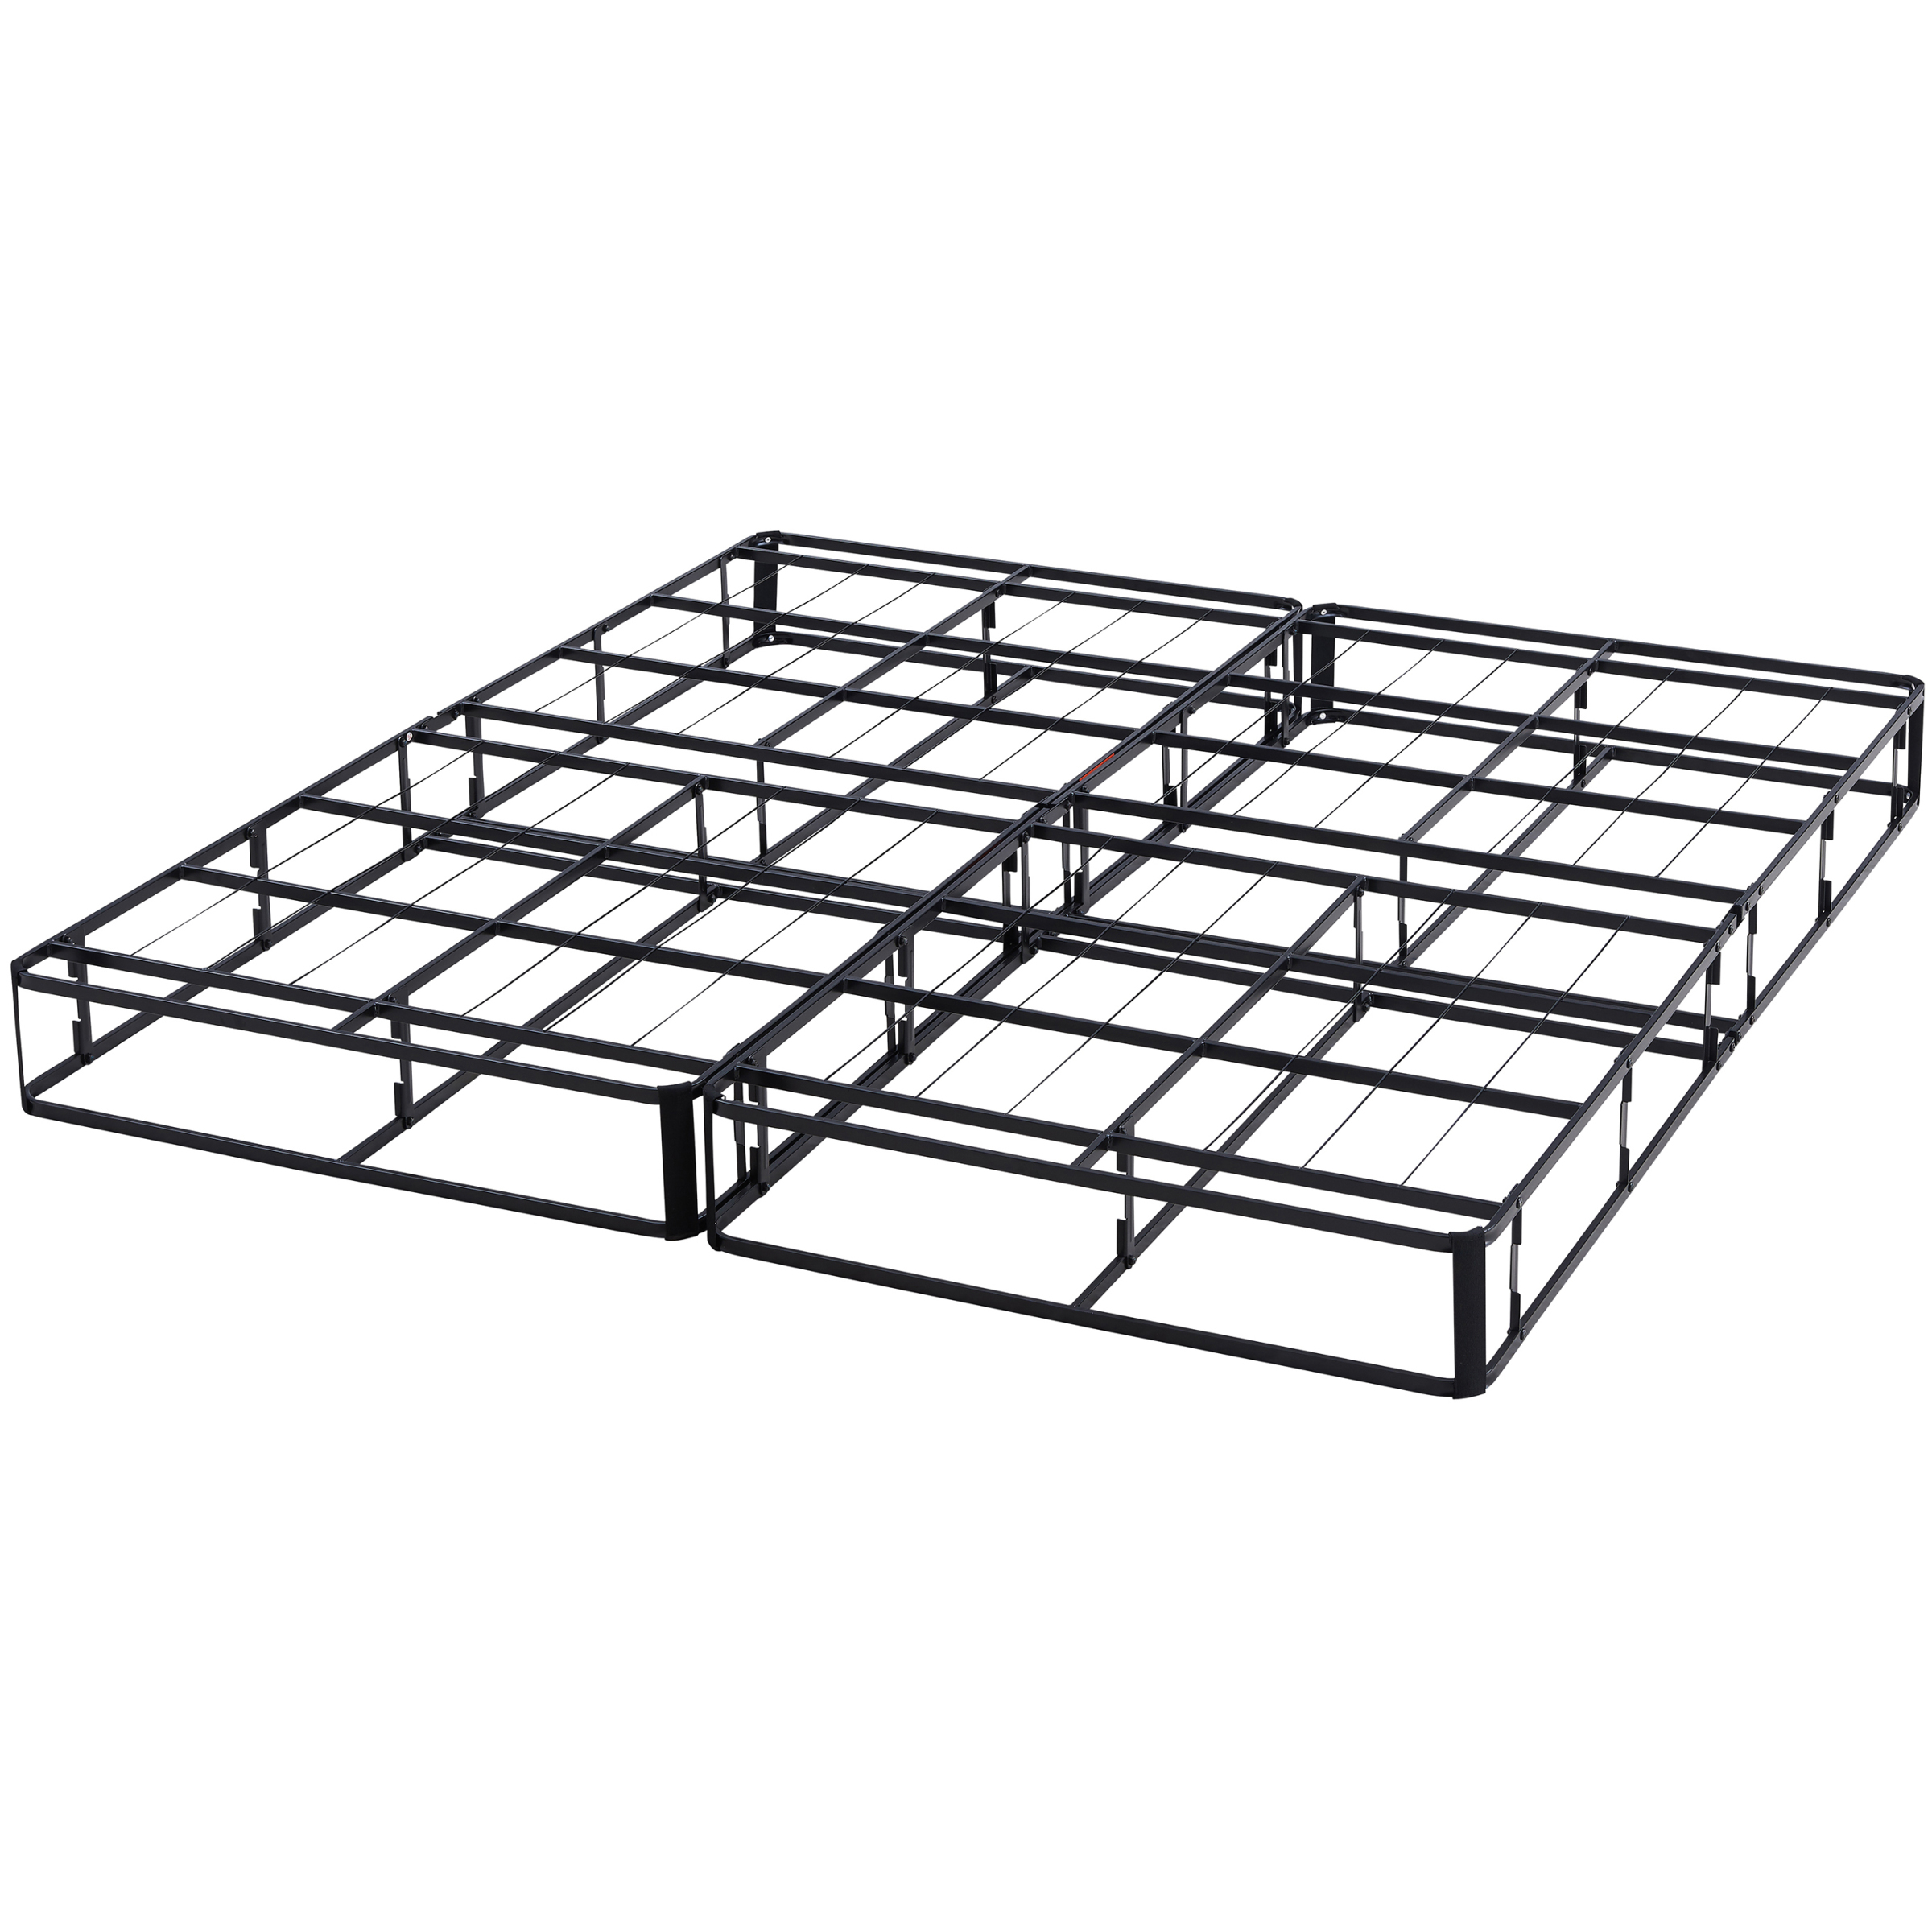 "Mainstays 7.5"" Half-Fold Metal Box Spring, Black Steel by Changtai Campvalley Leisure Product Co., Ltd"